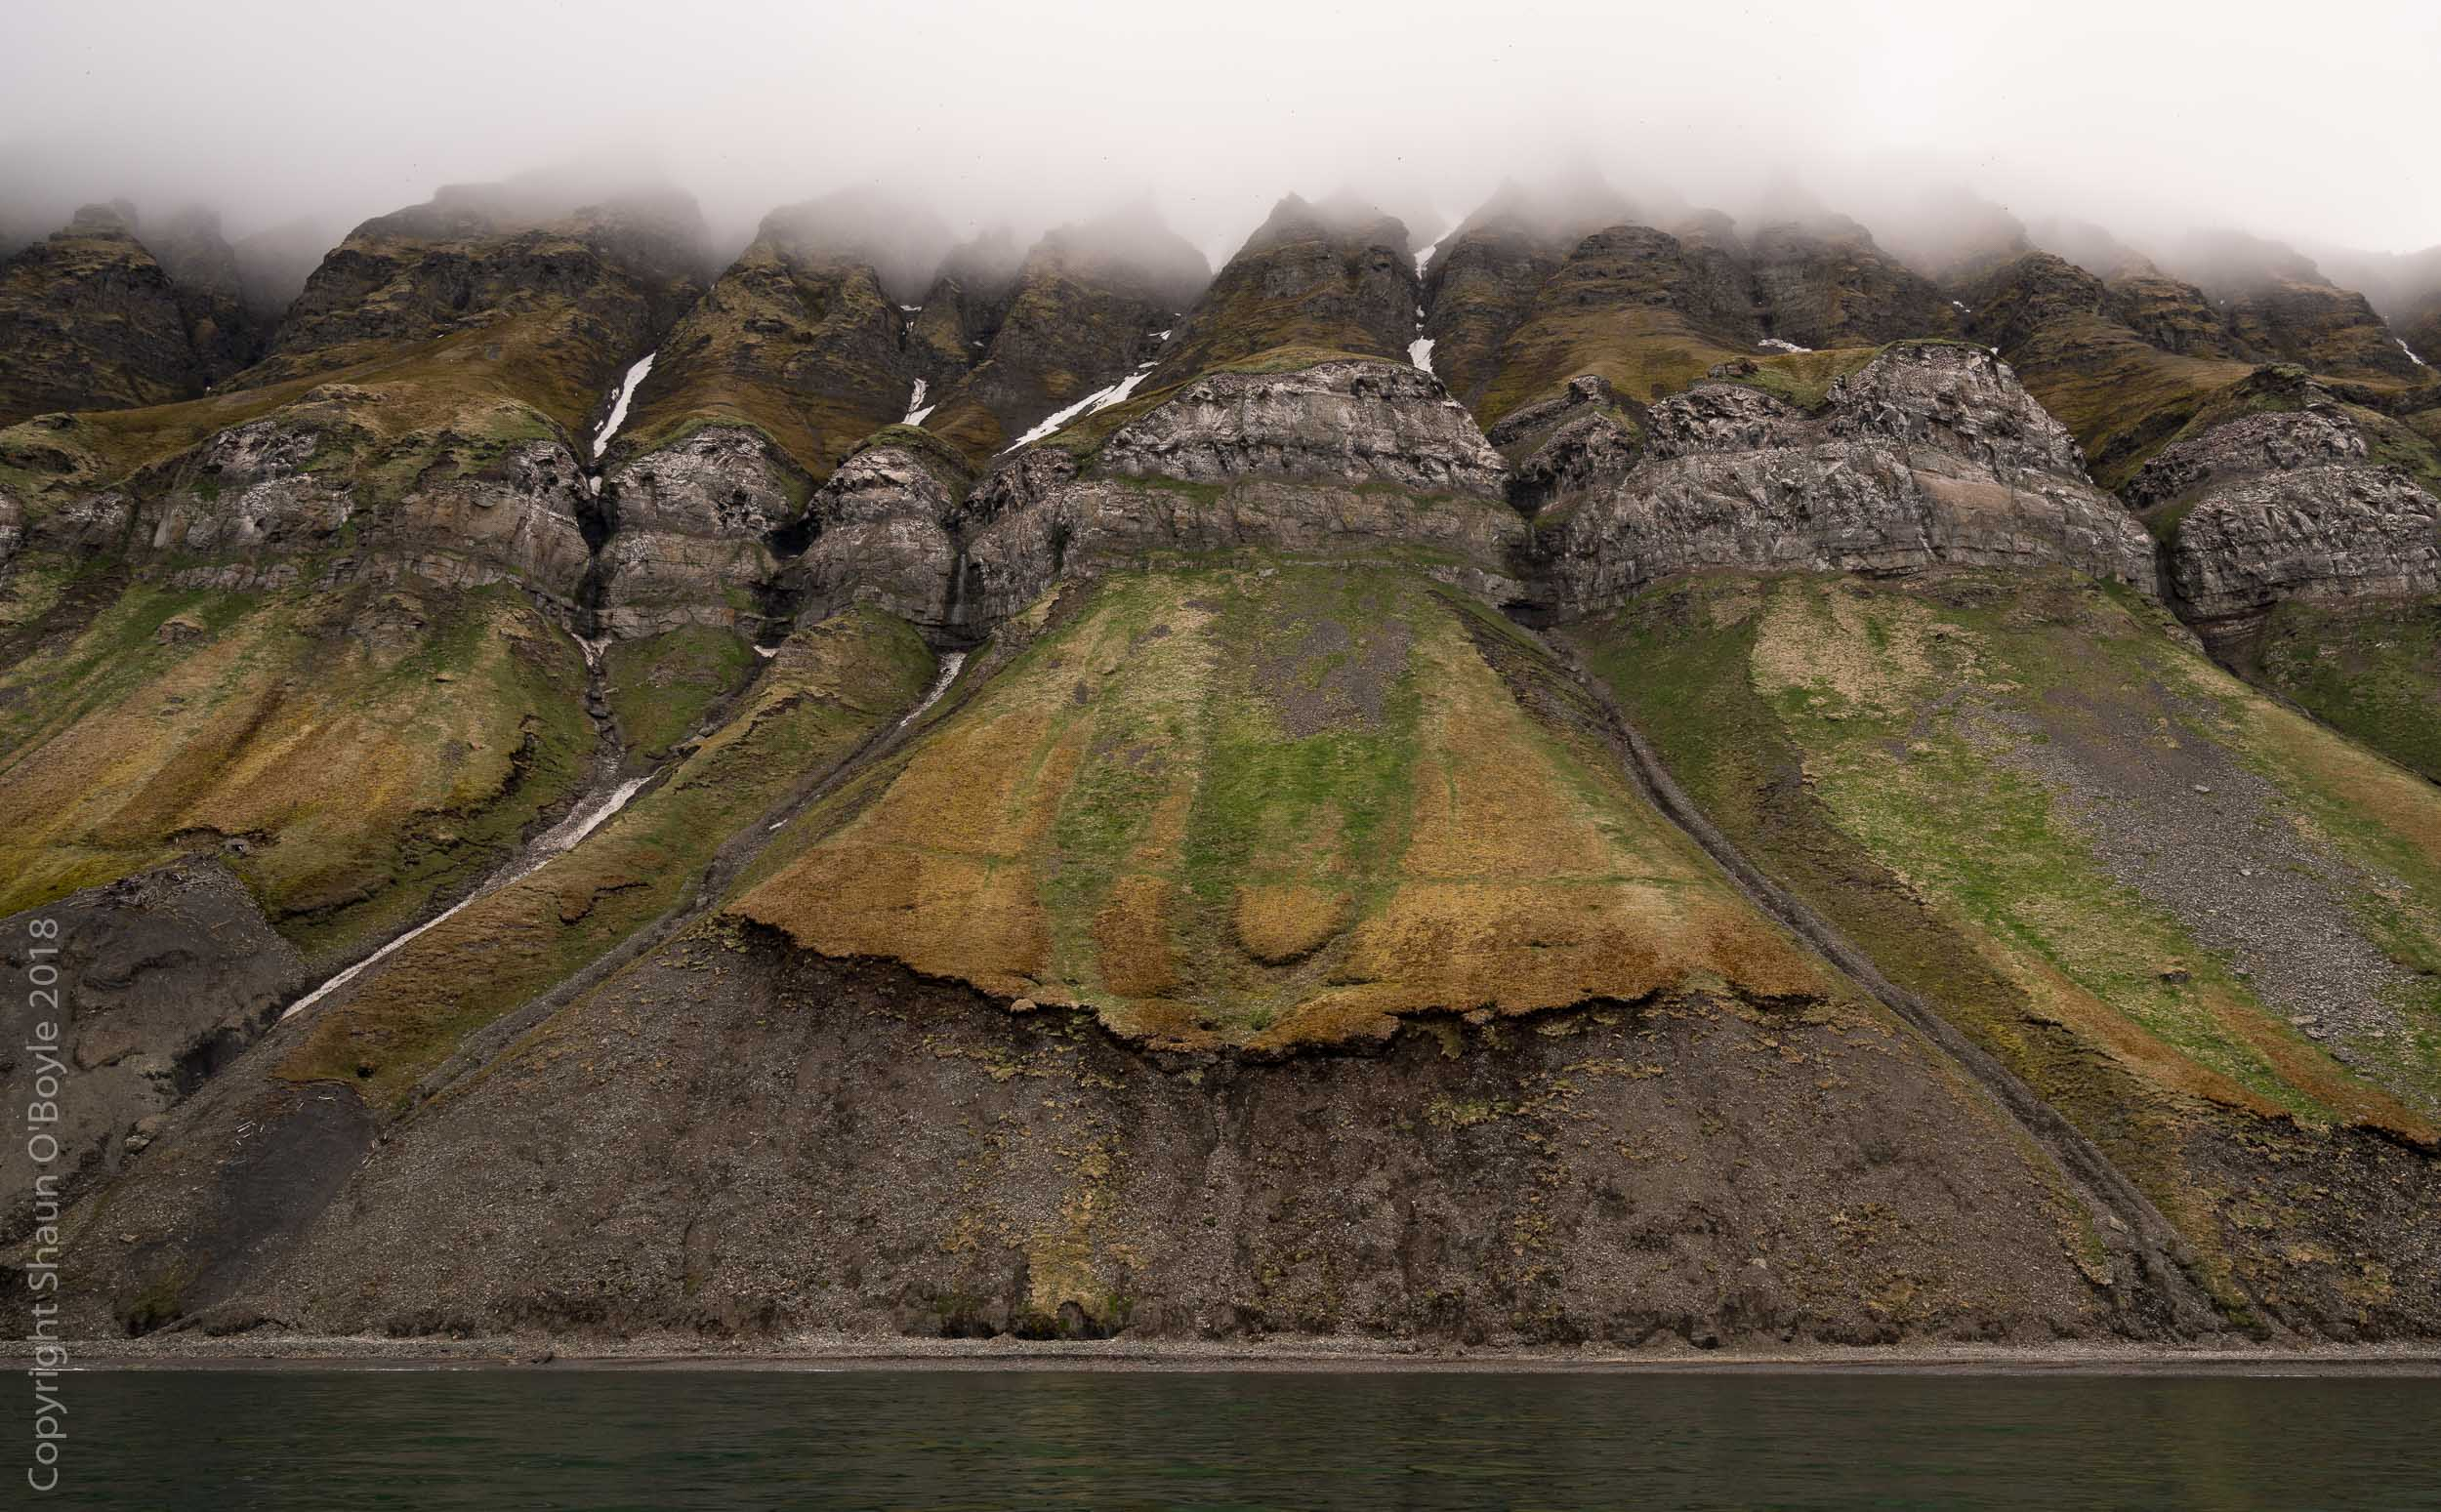 The summer colors of Spitsbergen (with a little help from the thousands of birds that nest here), from a boat trip to see the nesting birds - puffins, guillemots, terns, skua, kittiwakes - on the cliffs of Pilarberget.